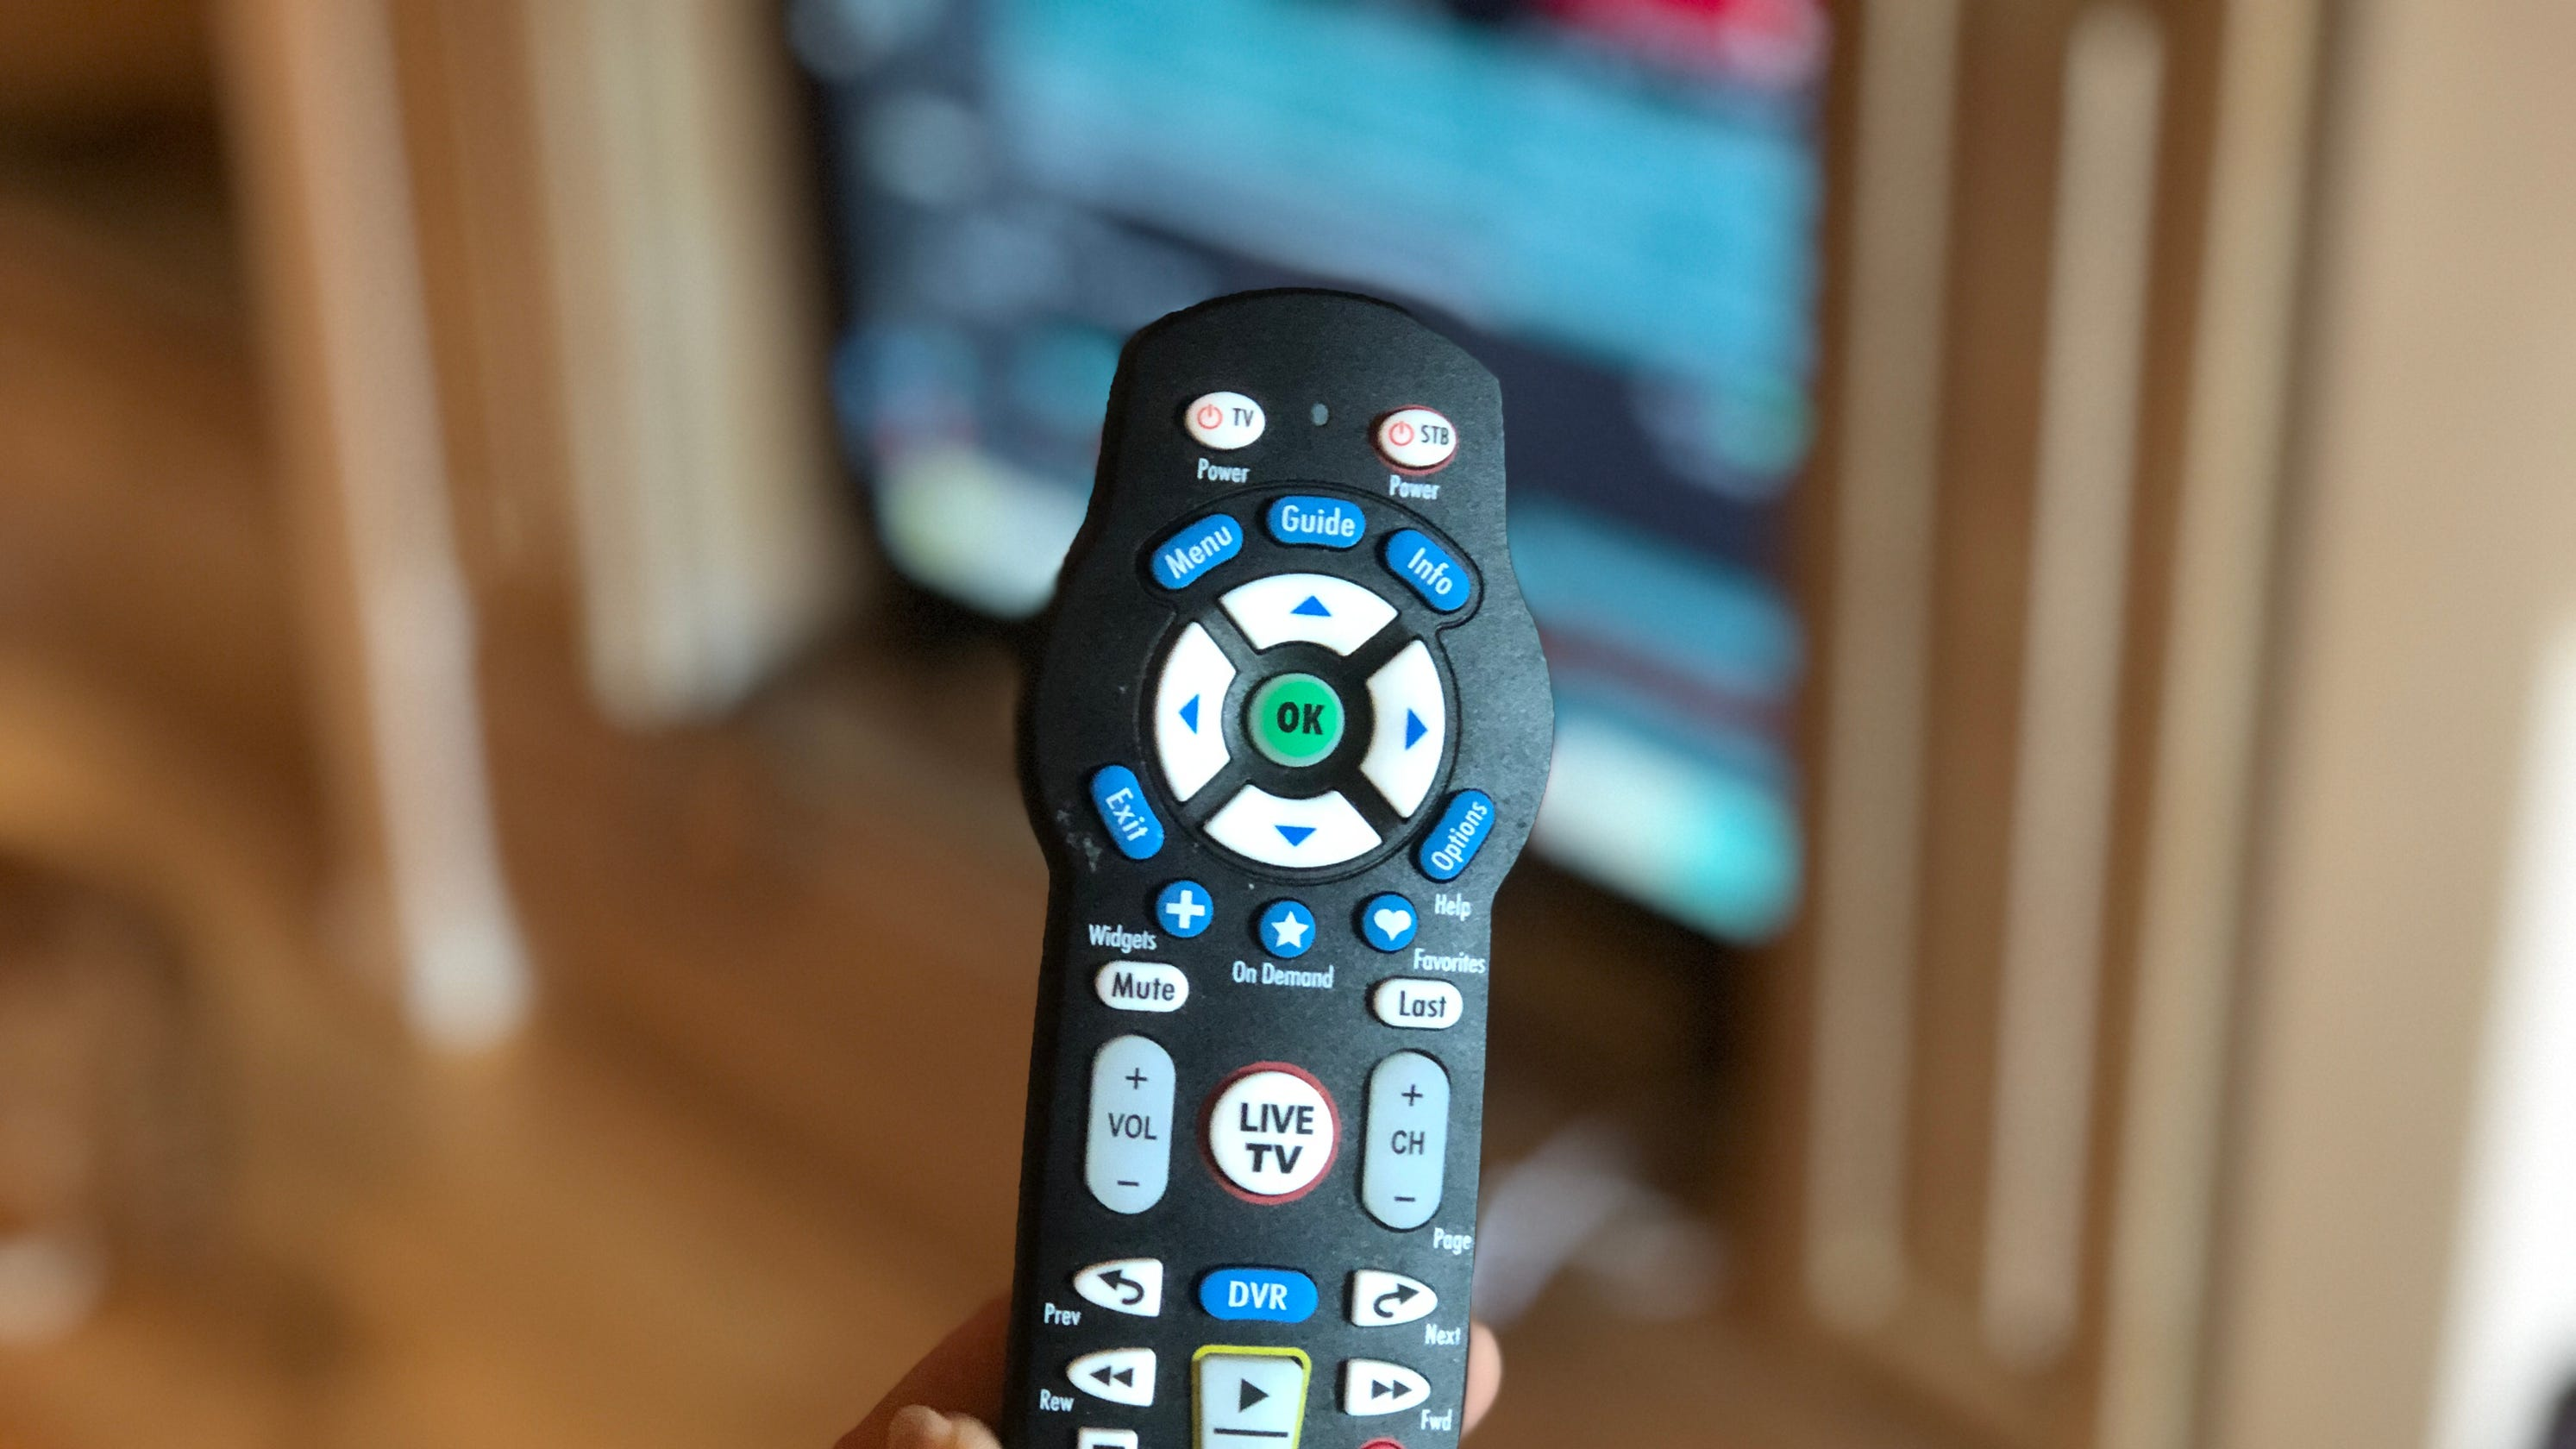 In defense of cable, and the joy of scrolling up and down a remote